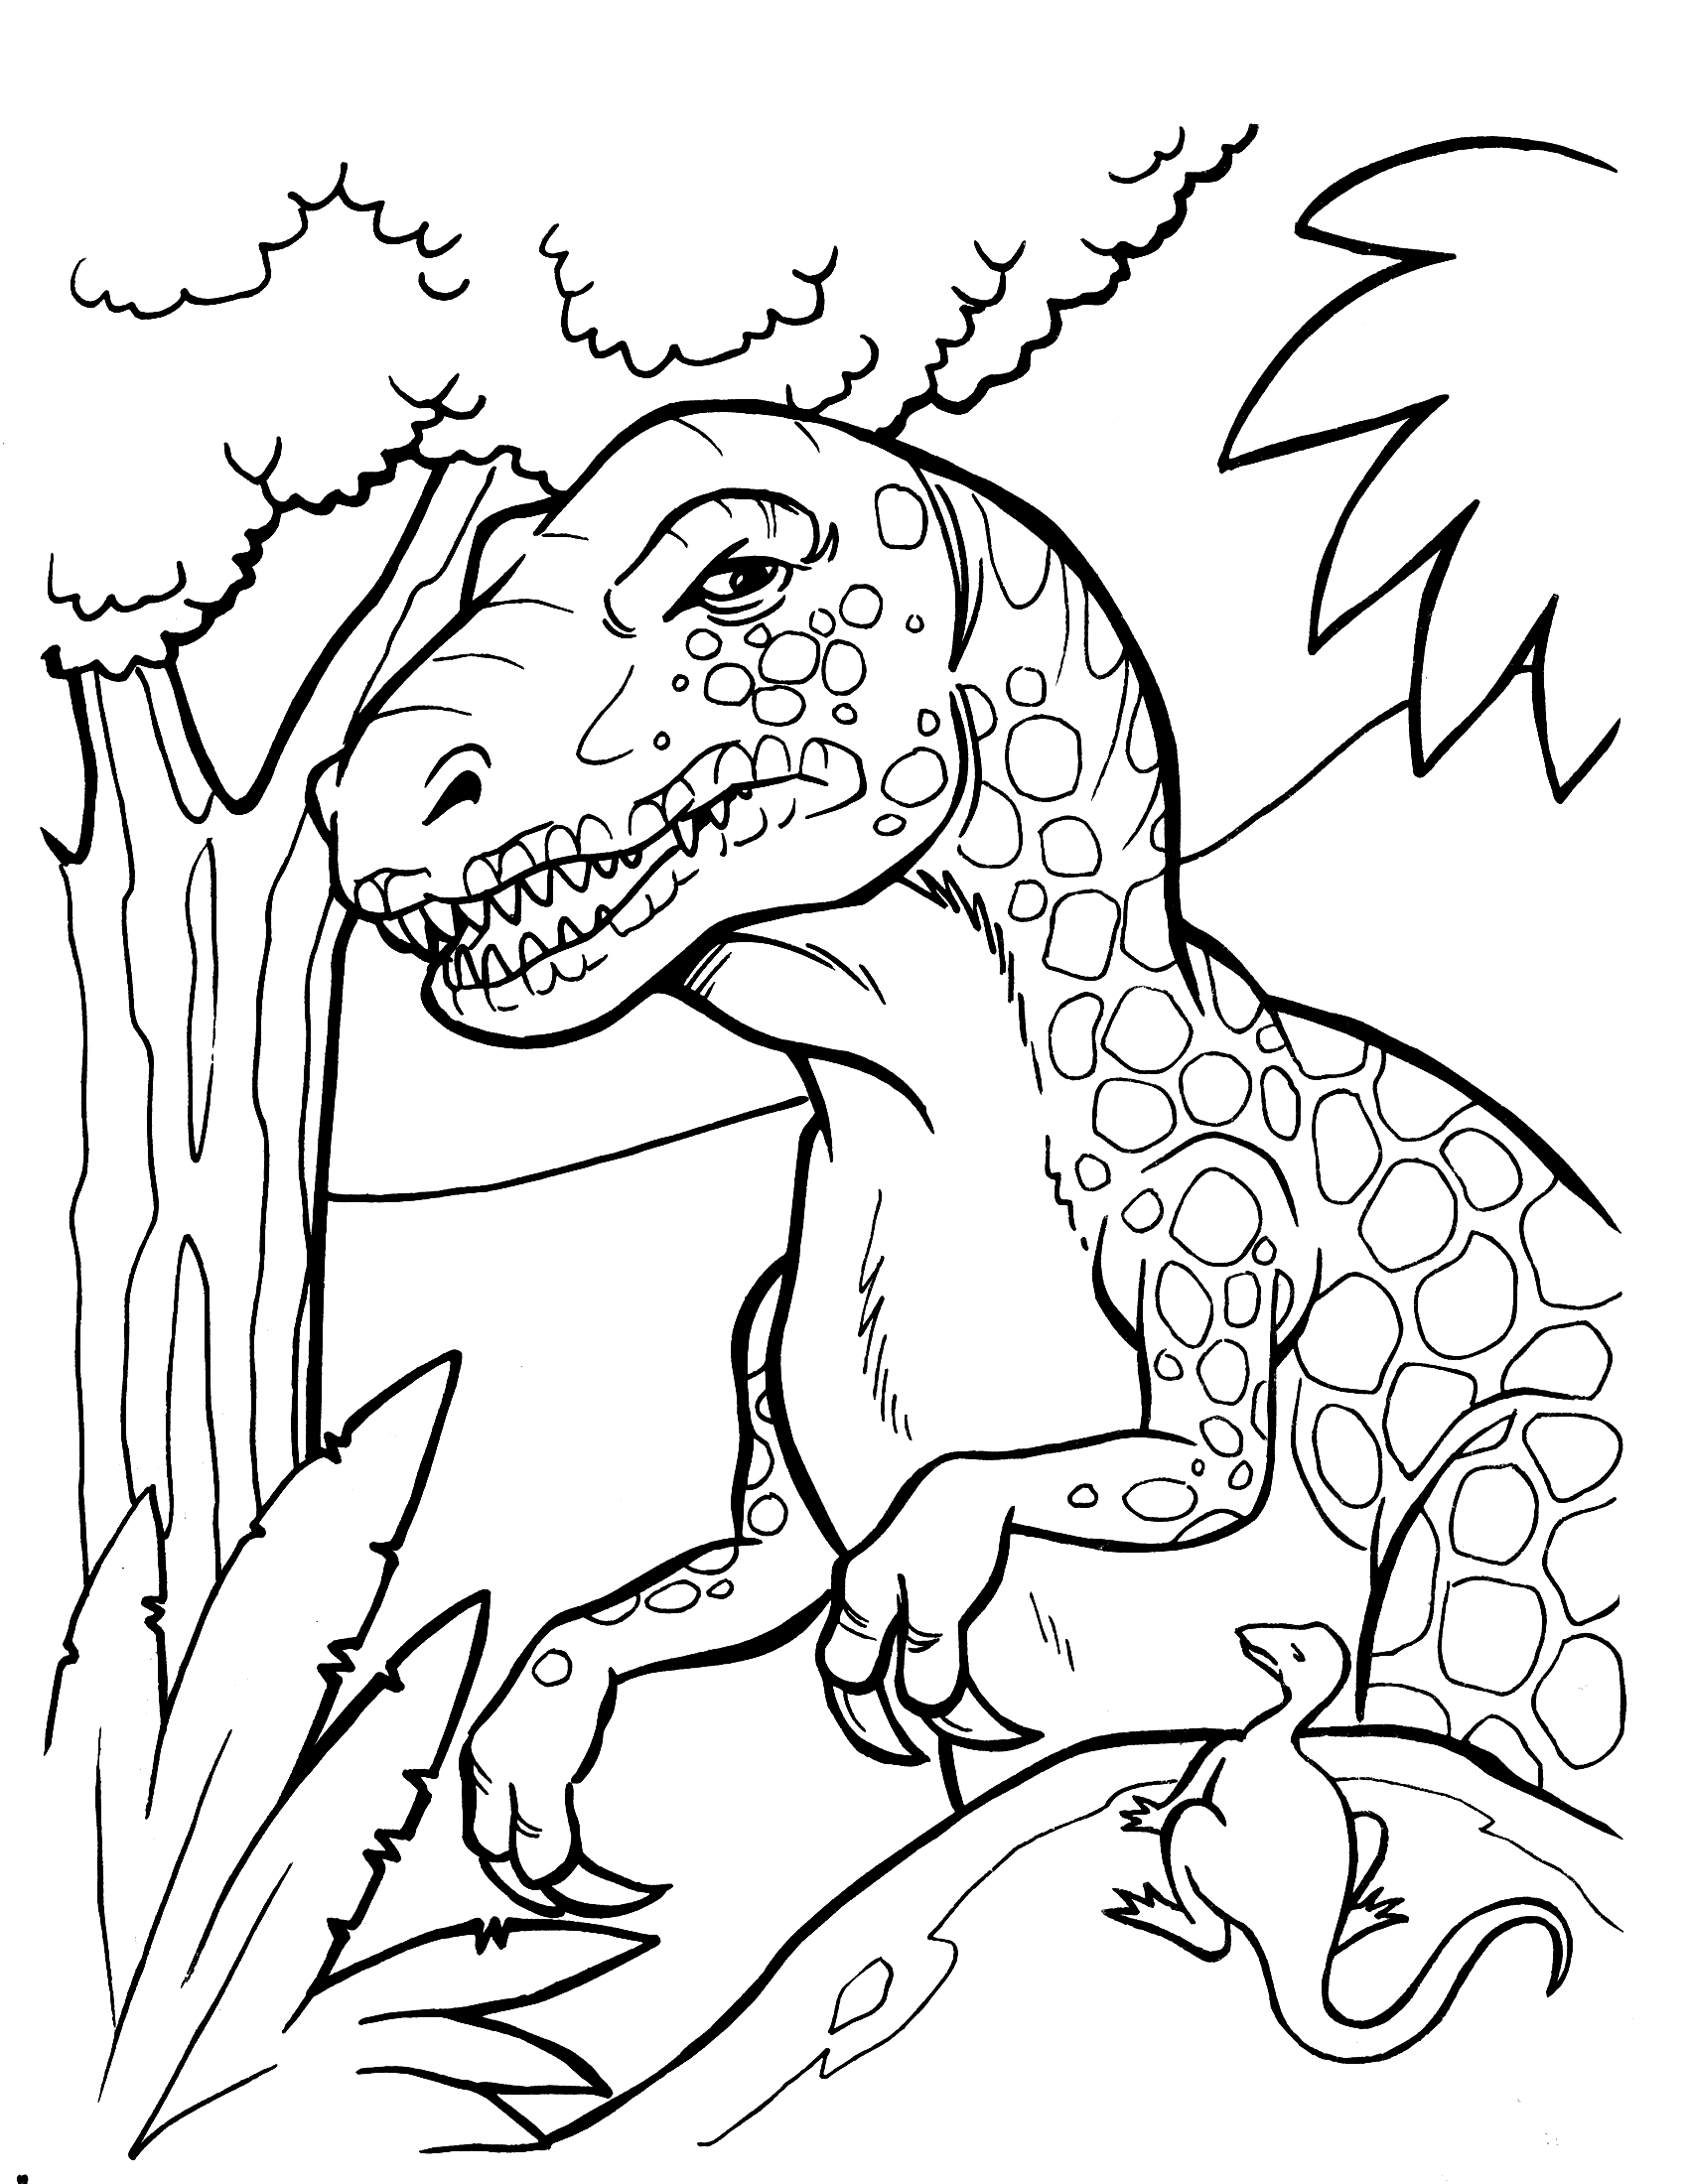 Printable Christmas Dinosaur Coloring Pages With Authentic Gecce